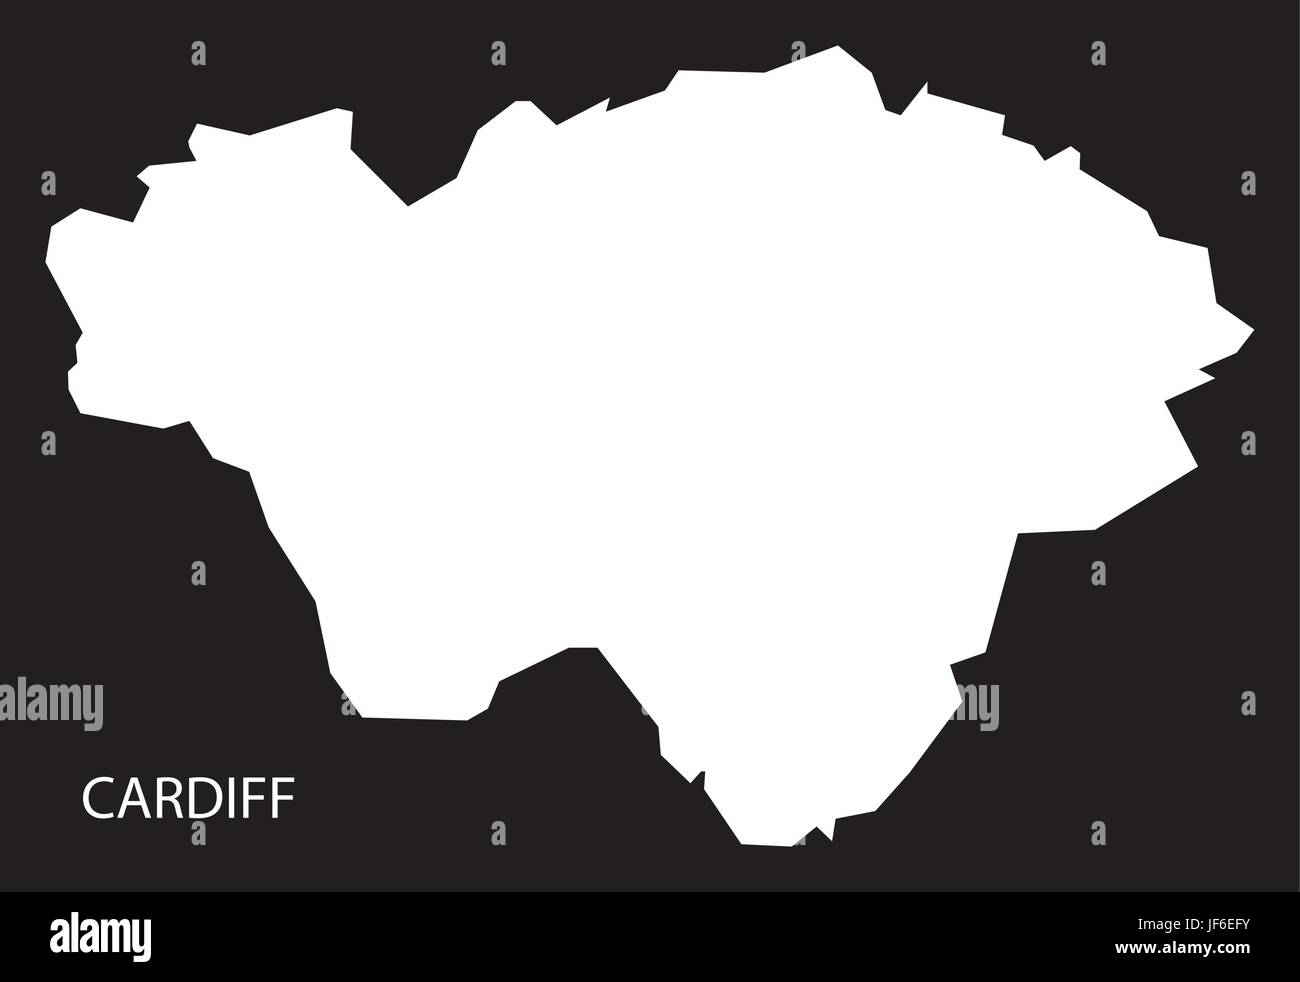 Cardiff Wales map black inverted silhouette illustration Stock ... on